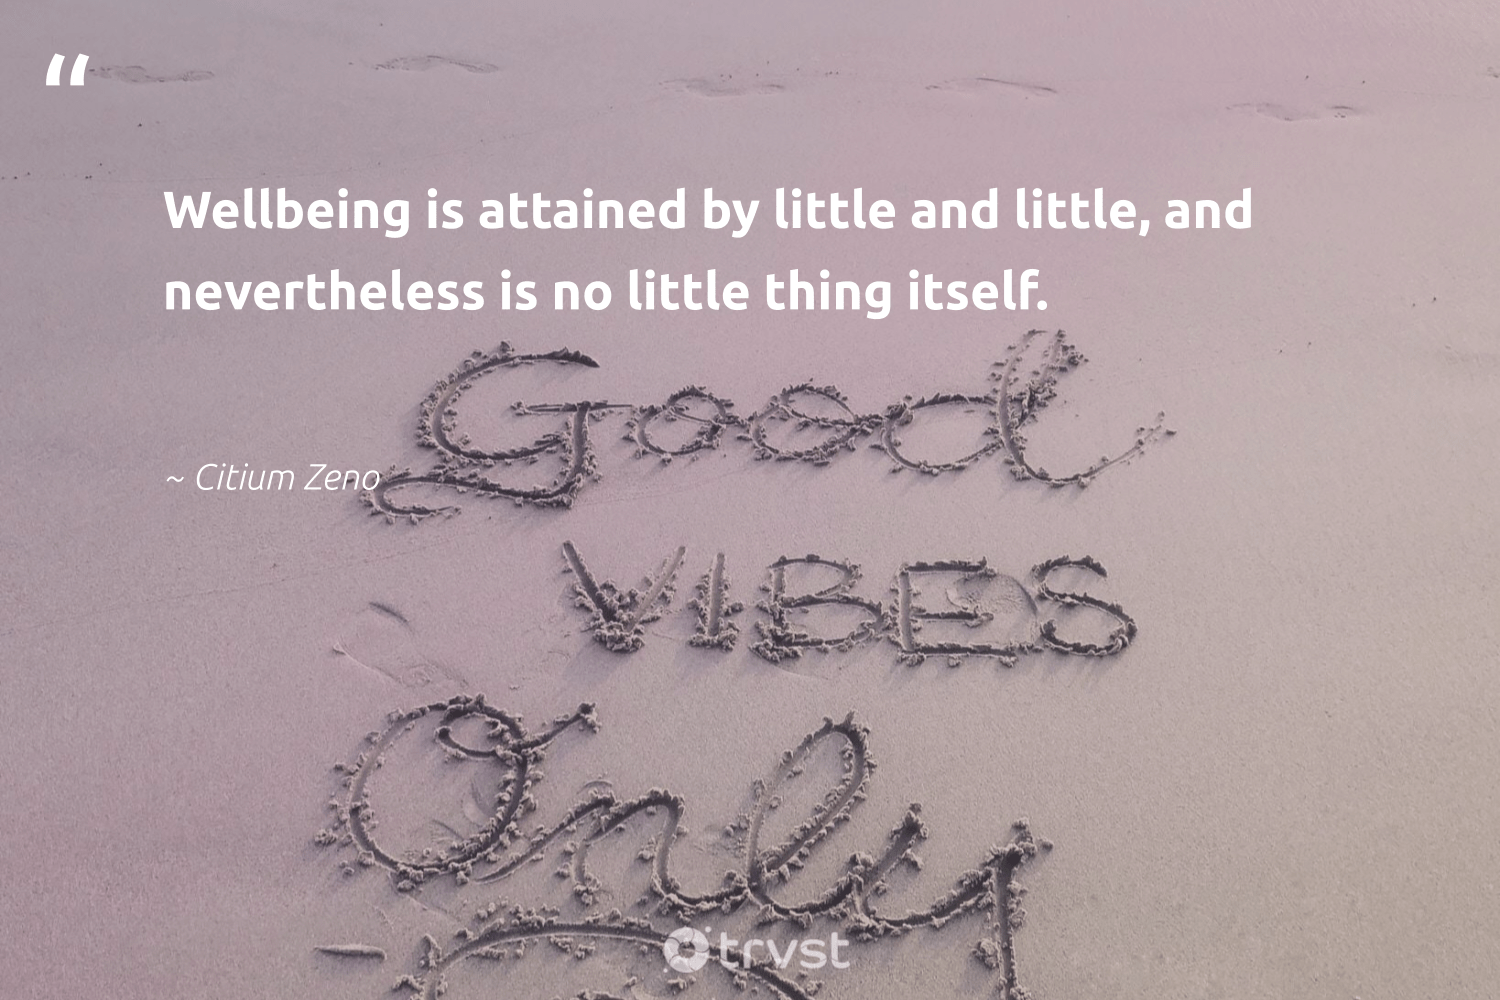 """Wellbeing is attained by little and little, and nevertheless is no little thing itself.""  - Citium Zeno #trvst #quotes #wellbeing #healthyliving #changemakers #togetherwecan #takeaction #healthylife #begreat #mindset #beinspired #healthy"